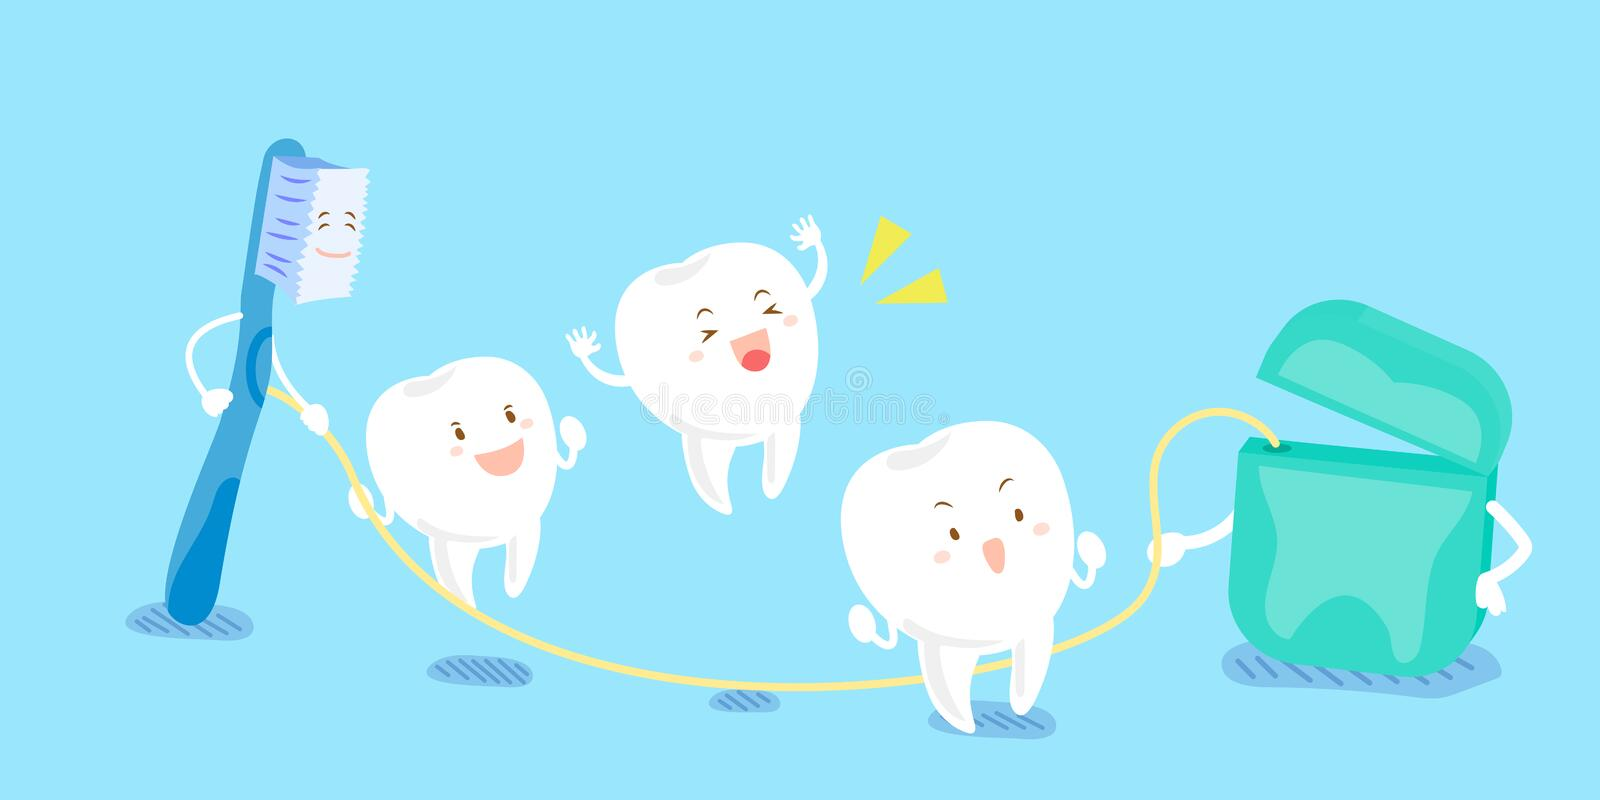 Tooth playing with dental floss. Cute cartoon tooth and brush playing with dental floss vector illustration